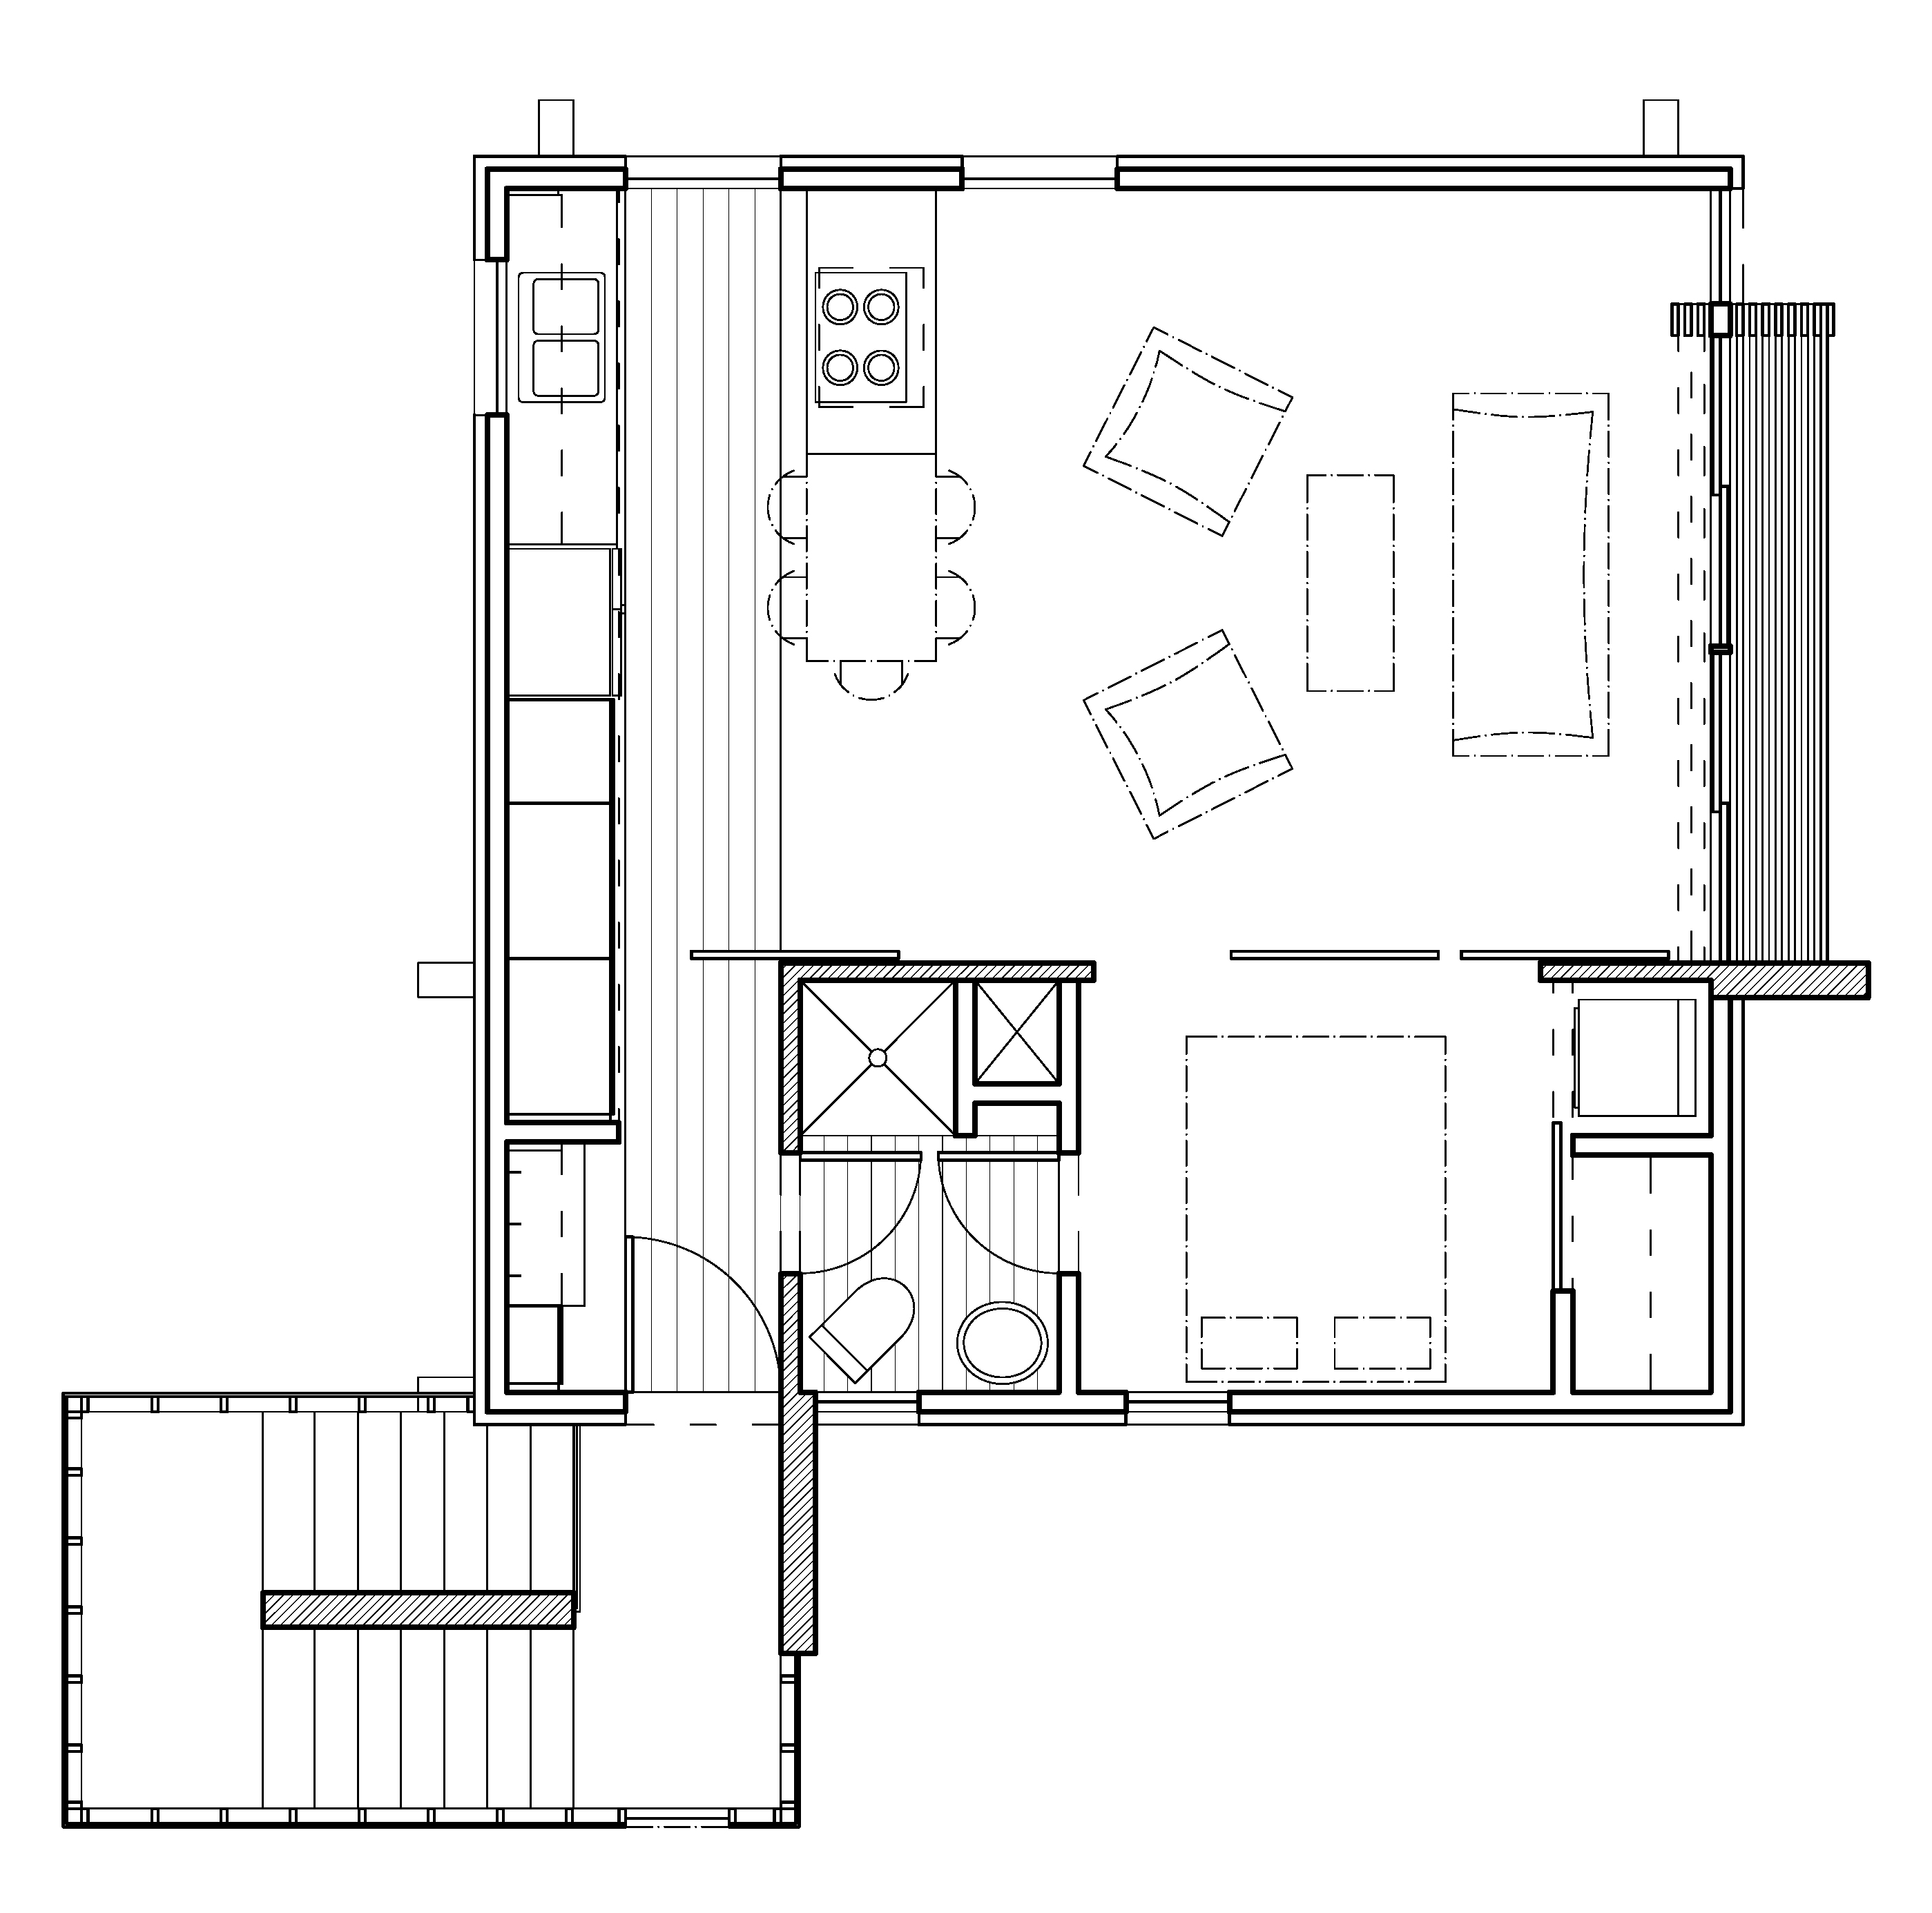 House Plans ontemporary Small - rts - ^